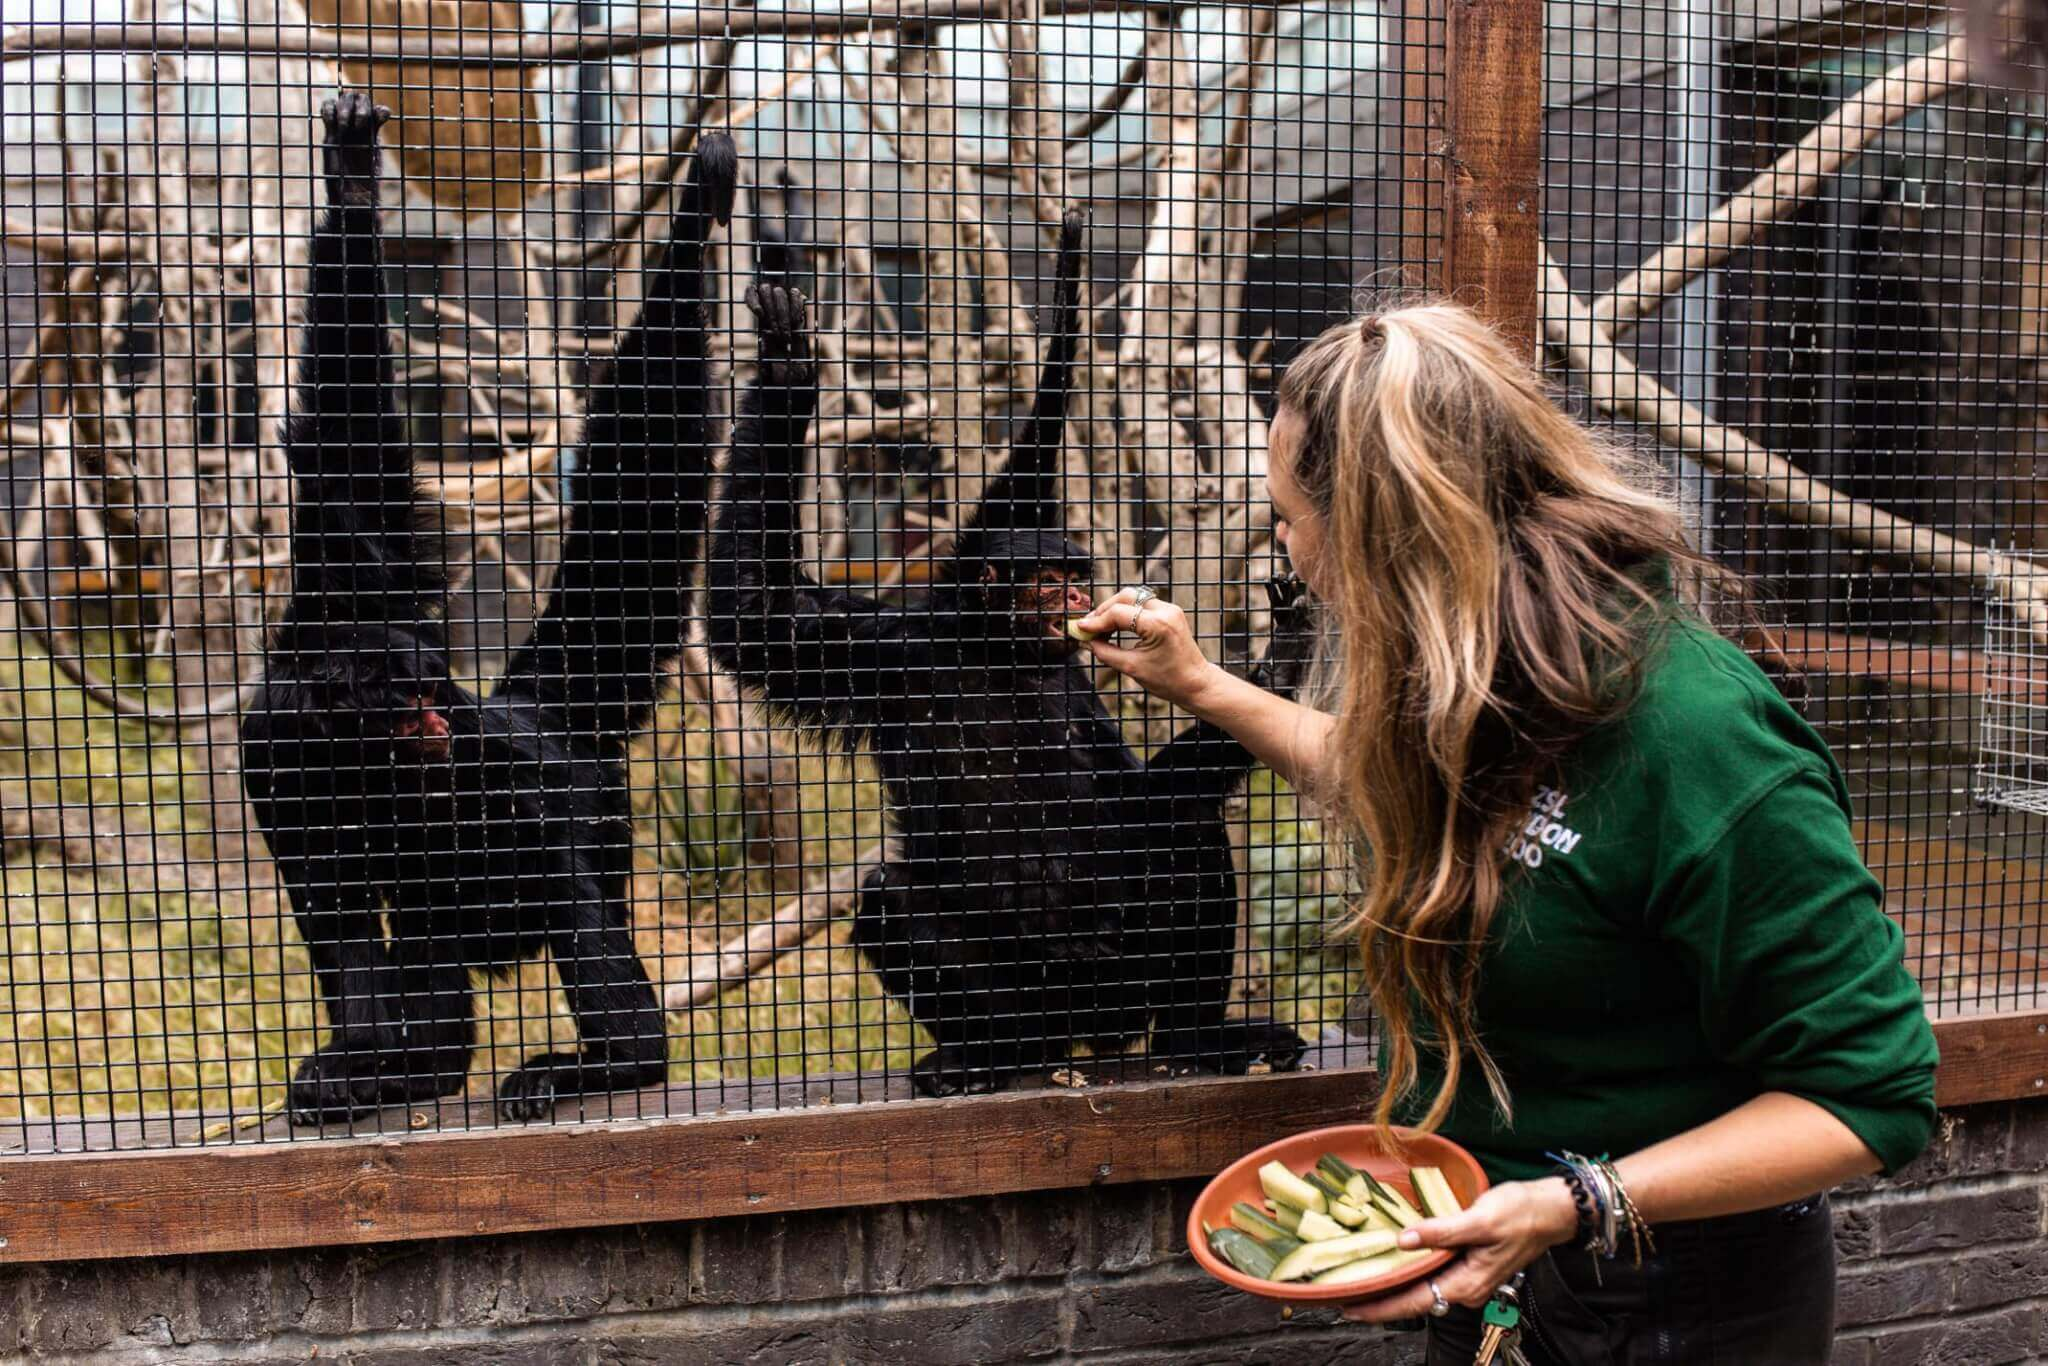 'KEEPER FOR A DAY' EXPERIENCE AT LONDON ZOO | Where's Mollie? A travel and adventure lifestyle blog